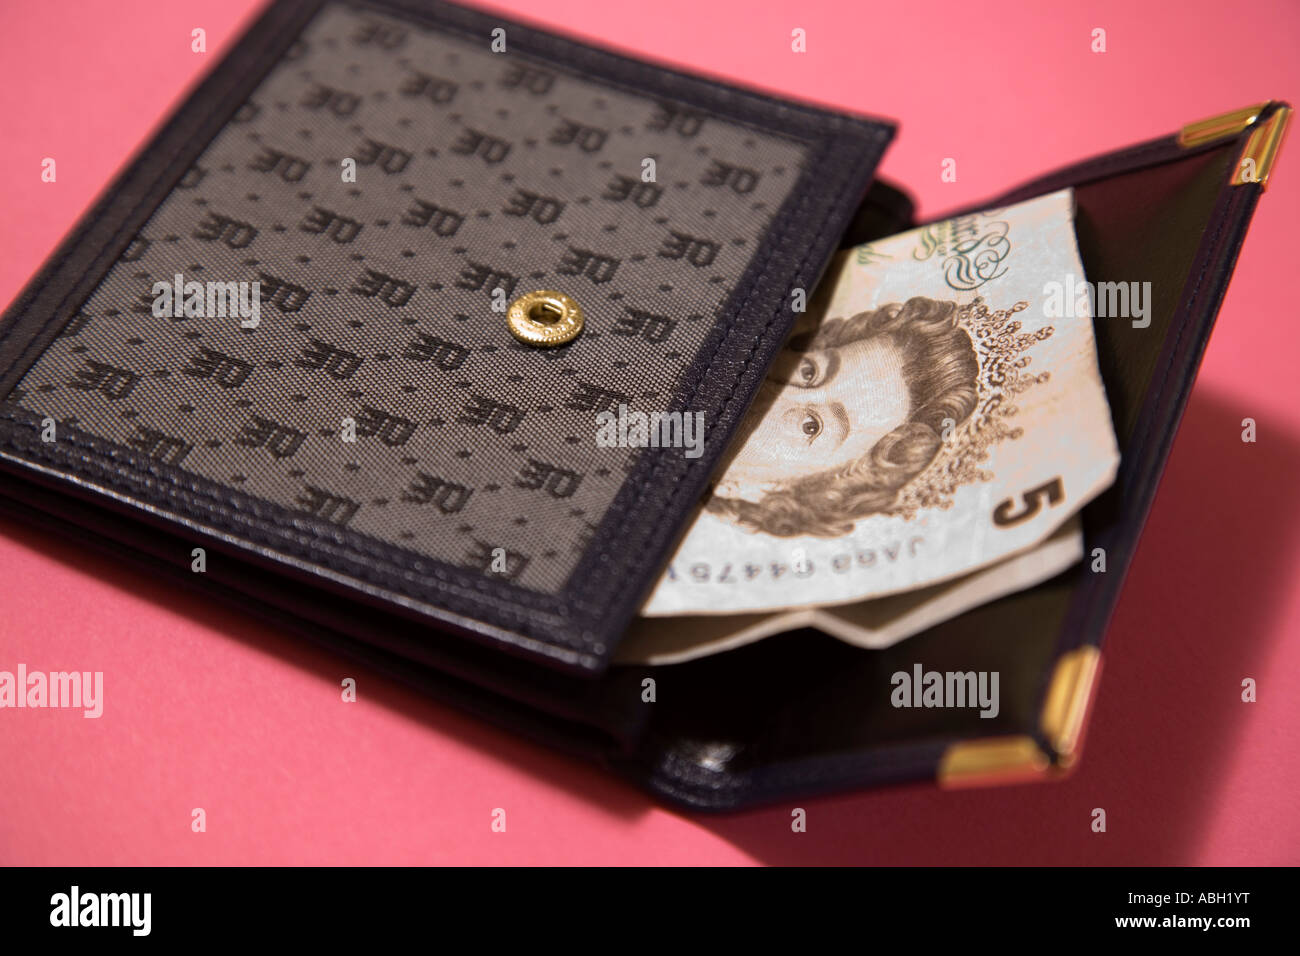 womens wallet purse containing five pound note - Stock Image